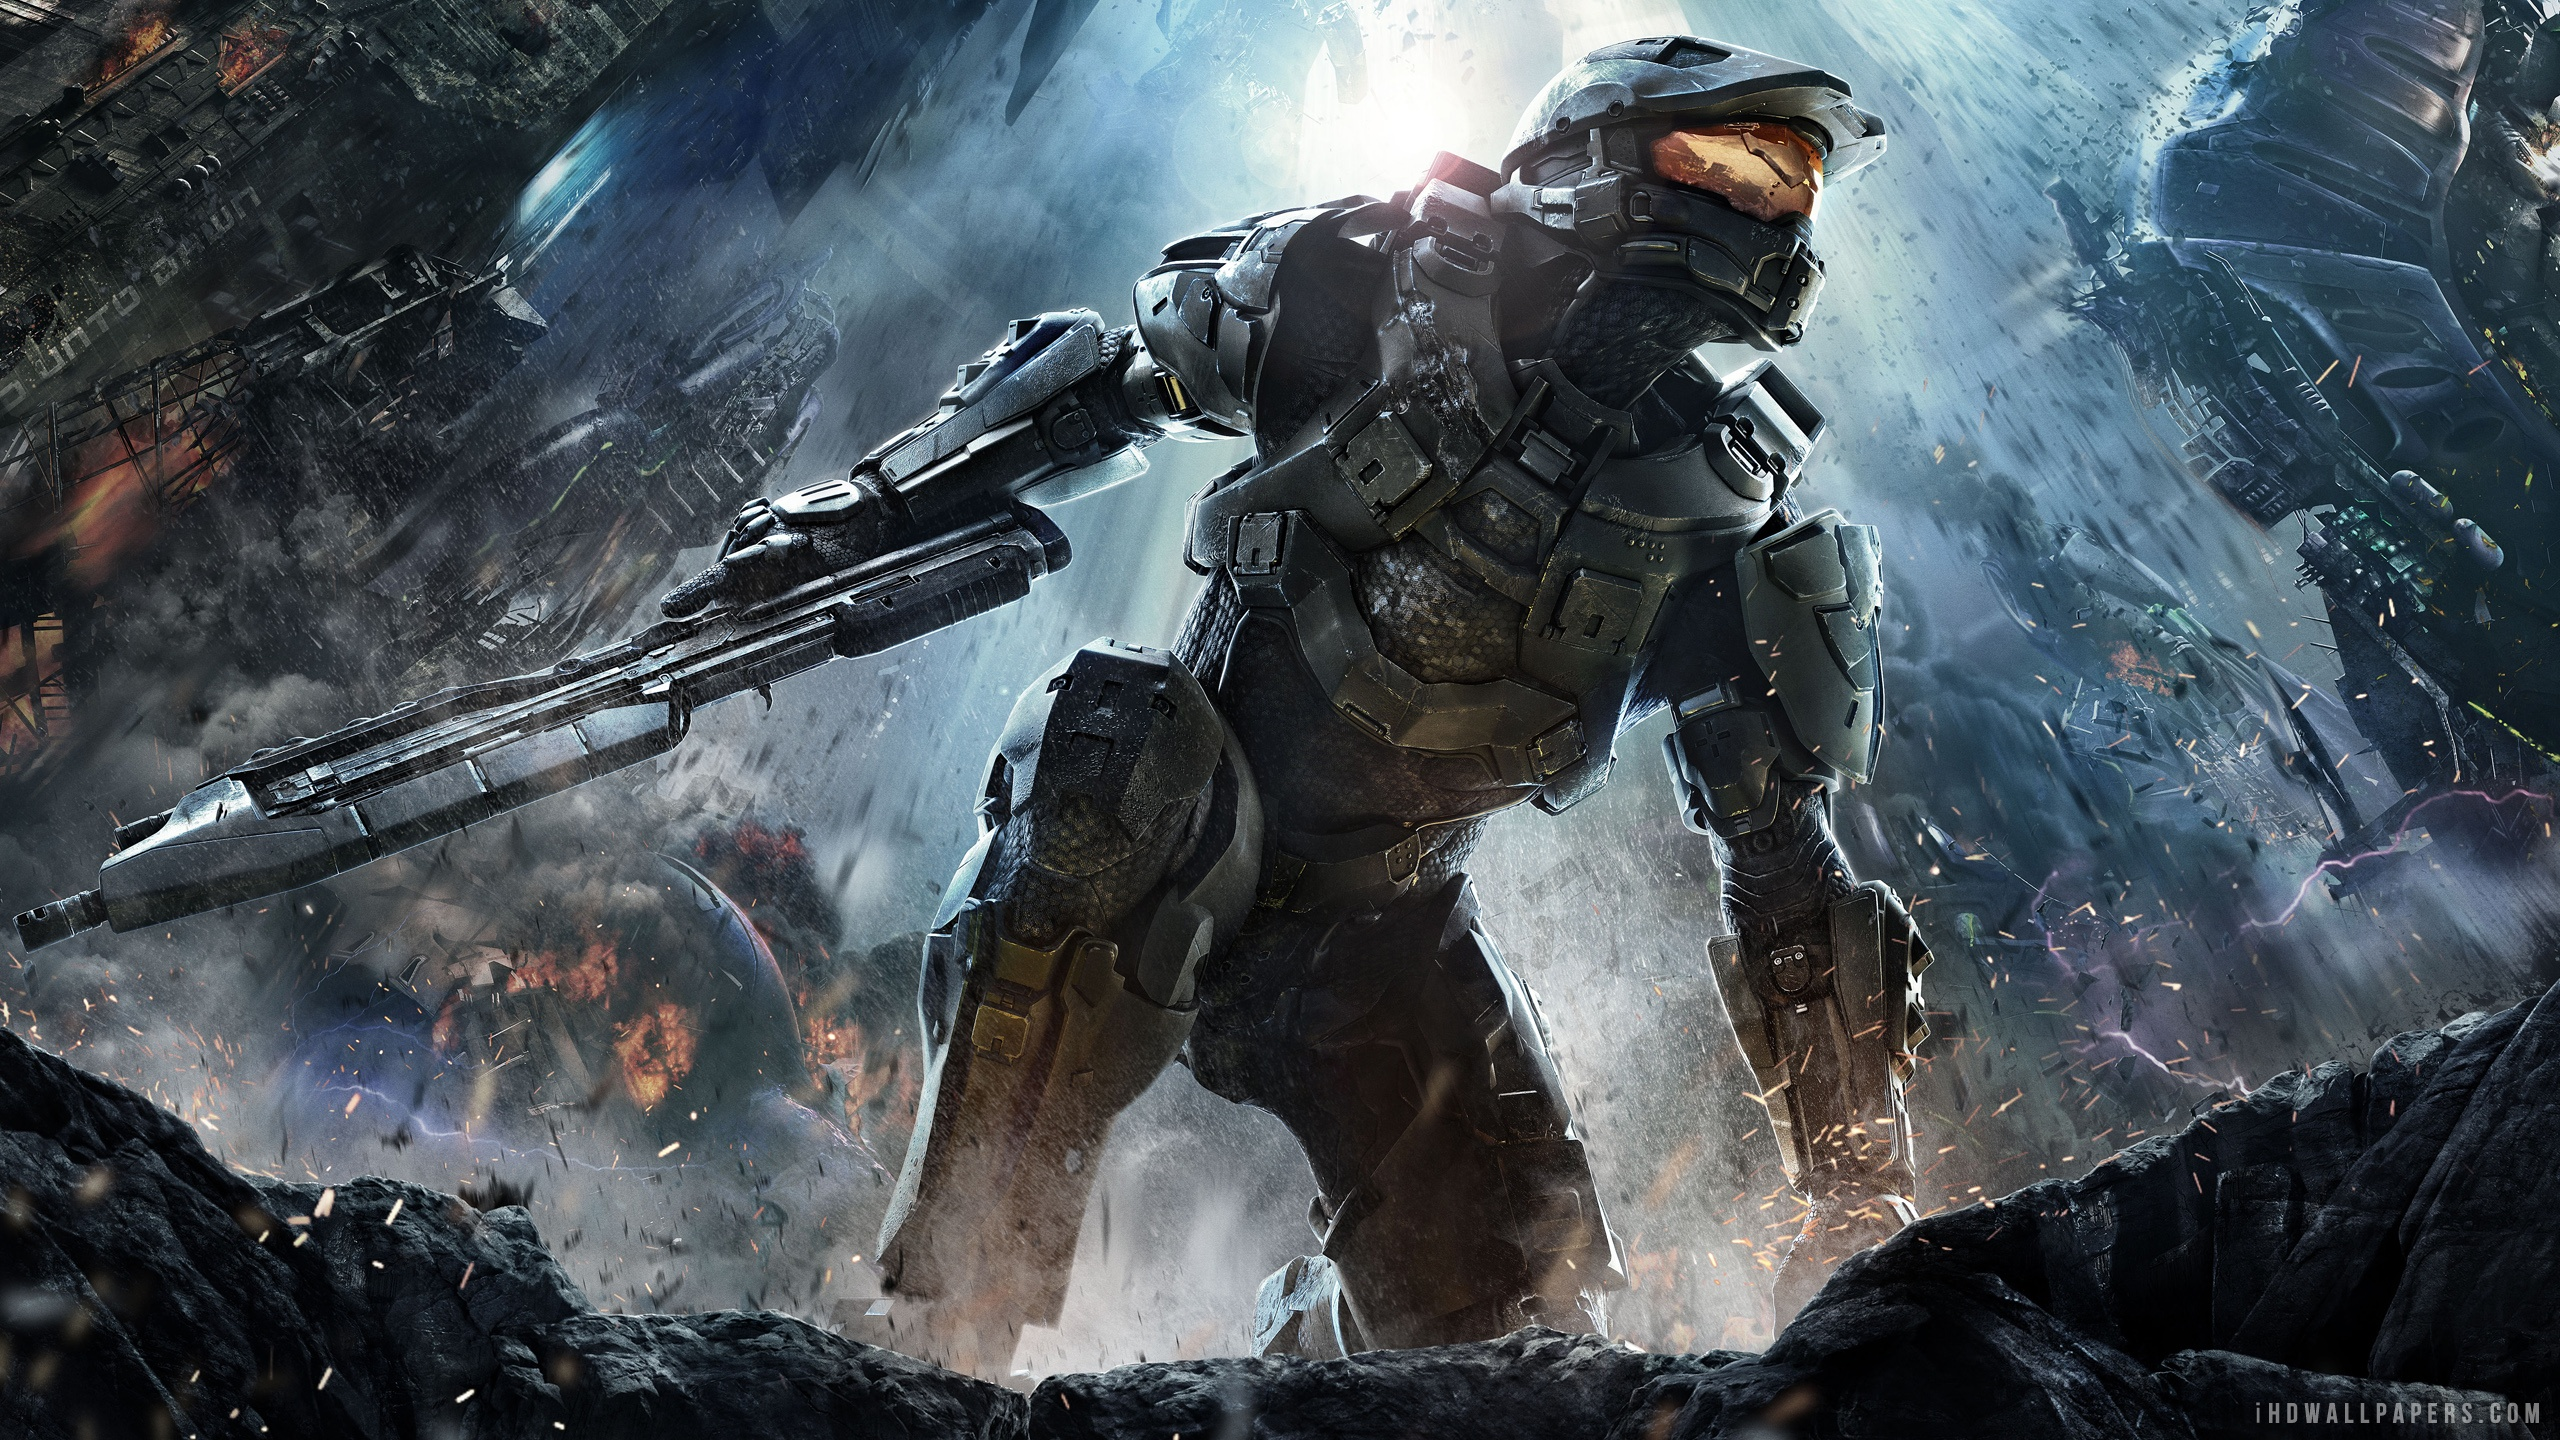 2012 Halo 4 Game HD Wallpaper   iHD Wallpapers 2560x1440